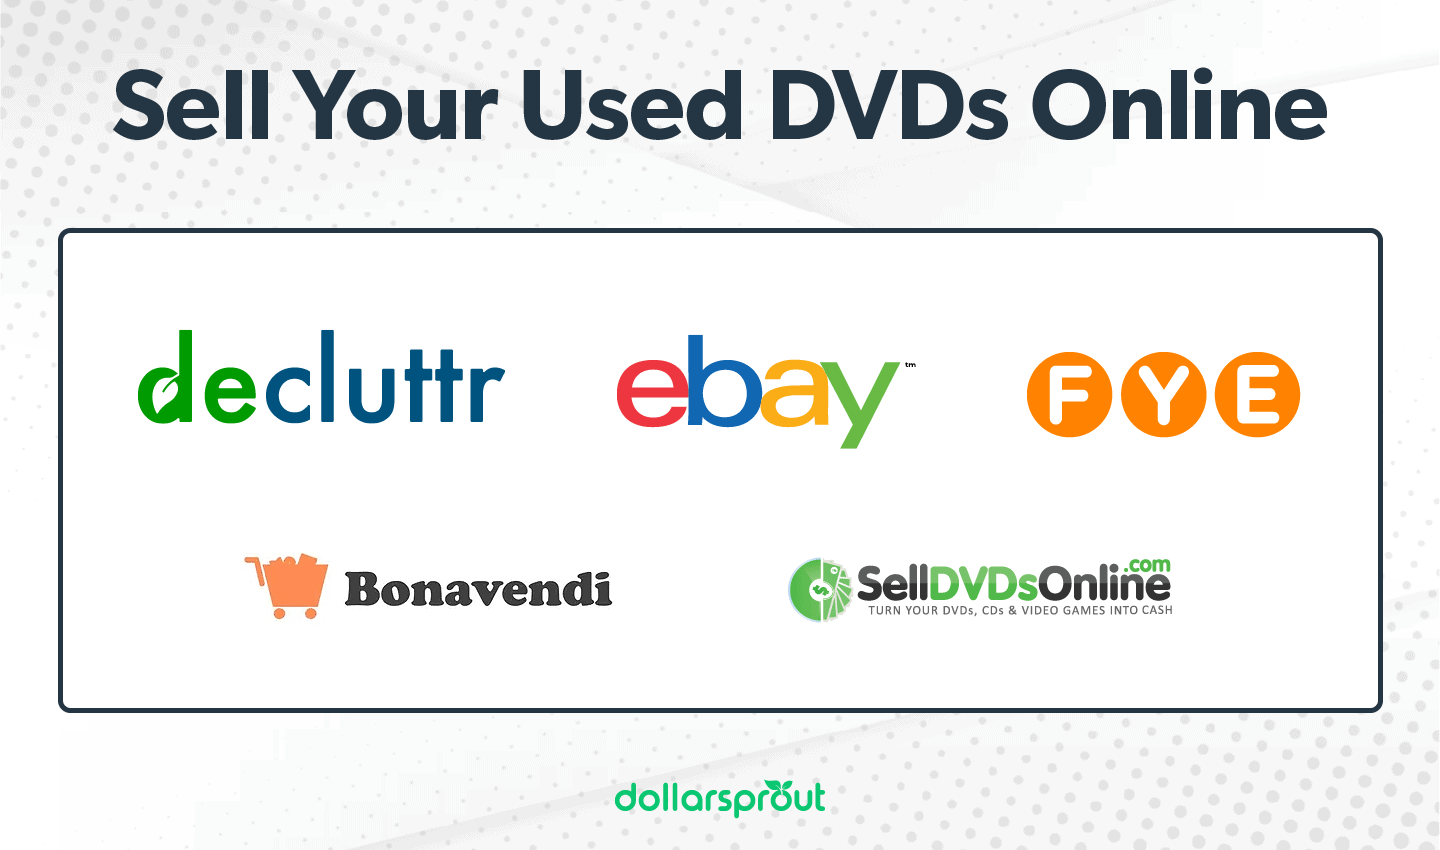 Sell Your Used DVDs Online